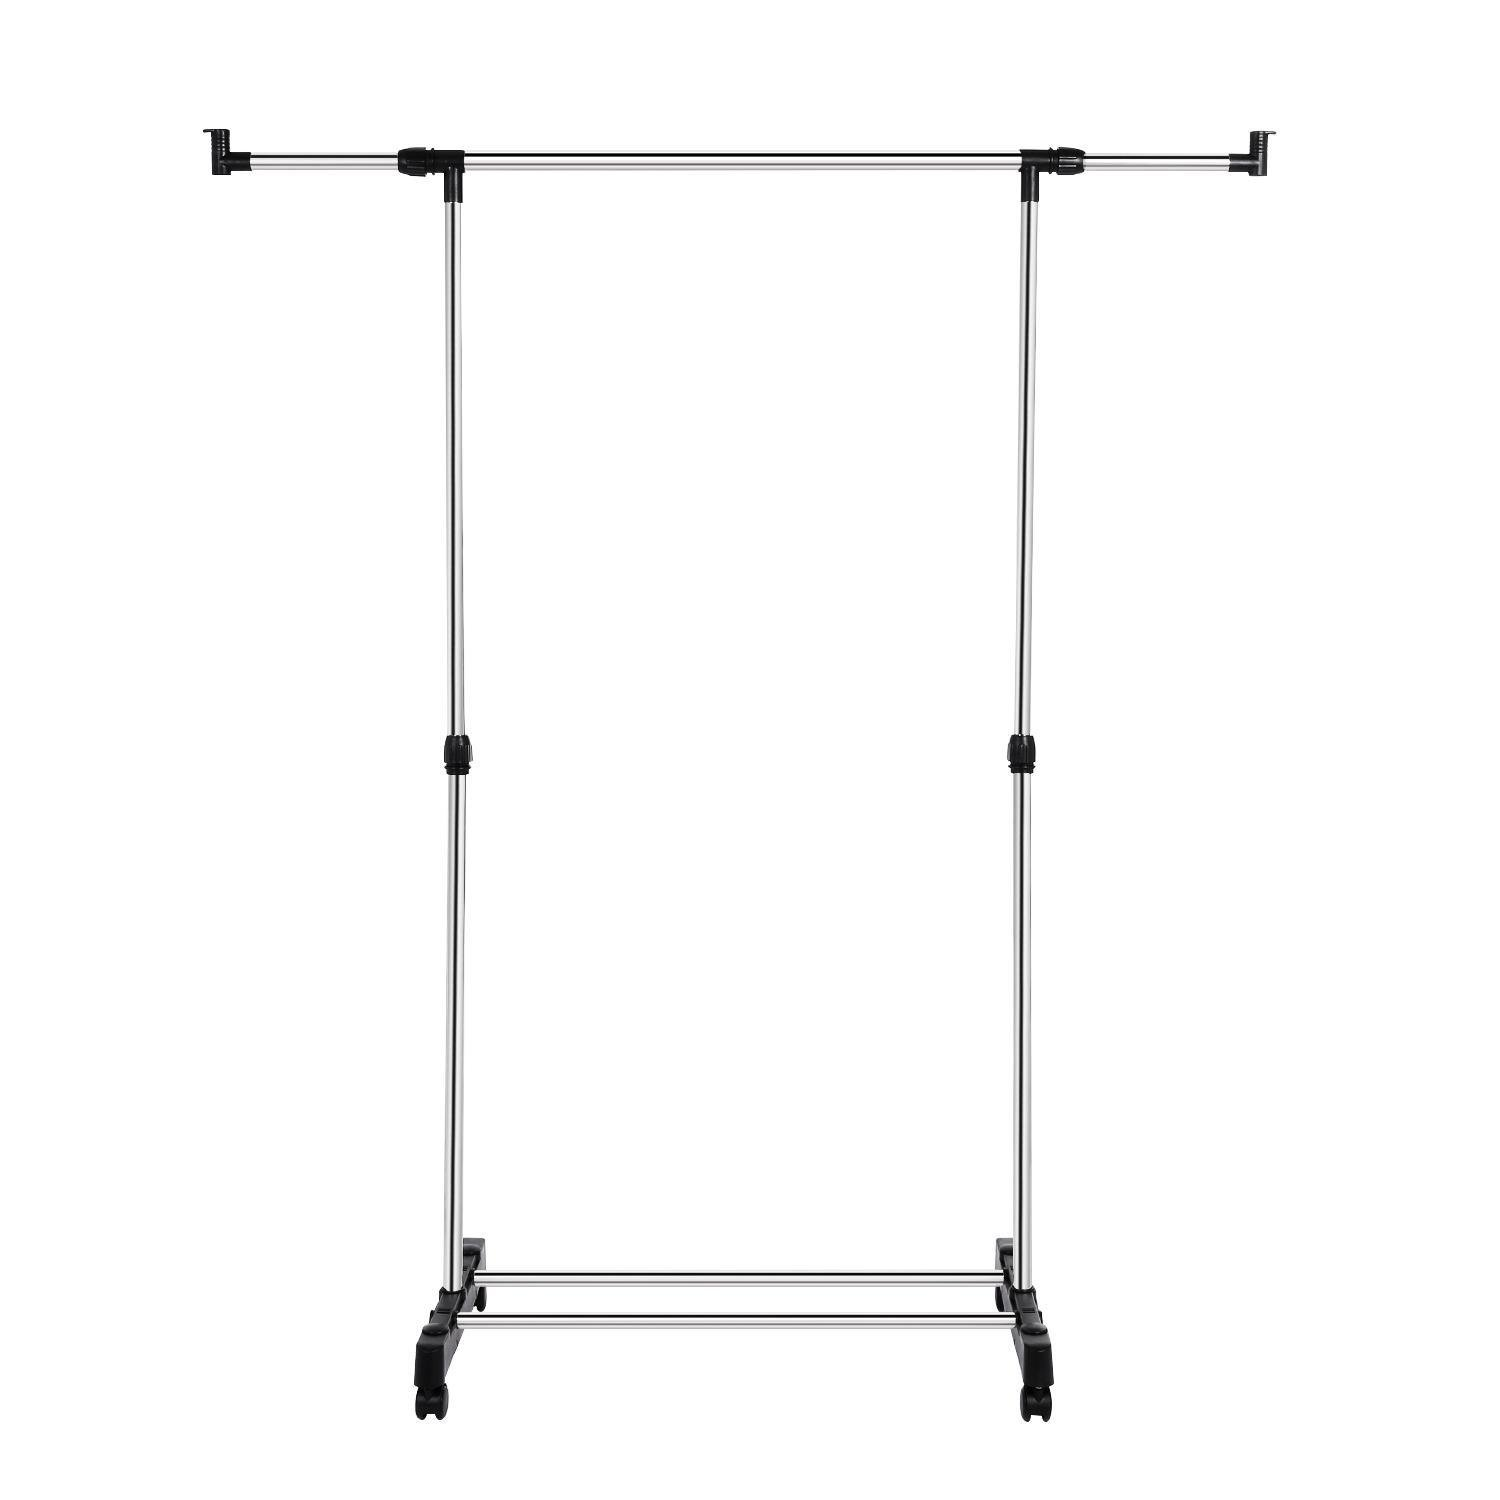 Leoneva Rolling Clothing Garment Rack with Wheels Portable Clothes Rack Stainless Steel Heavy Duty Height Adjustable